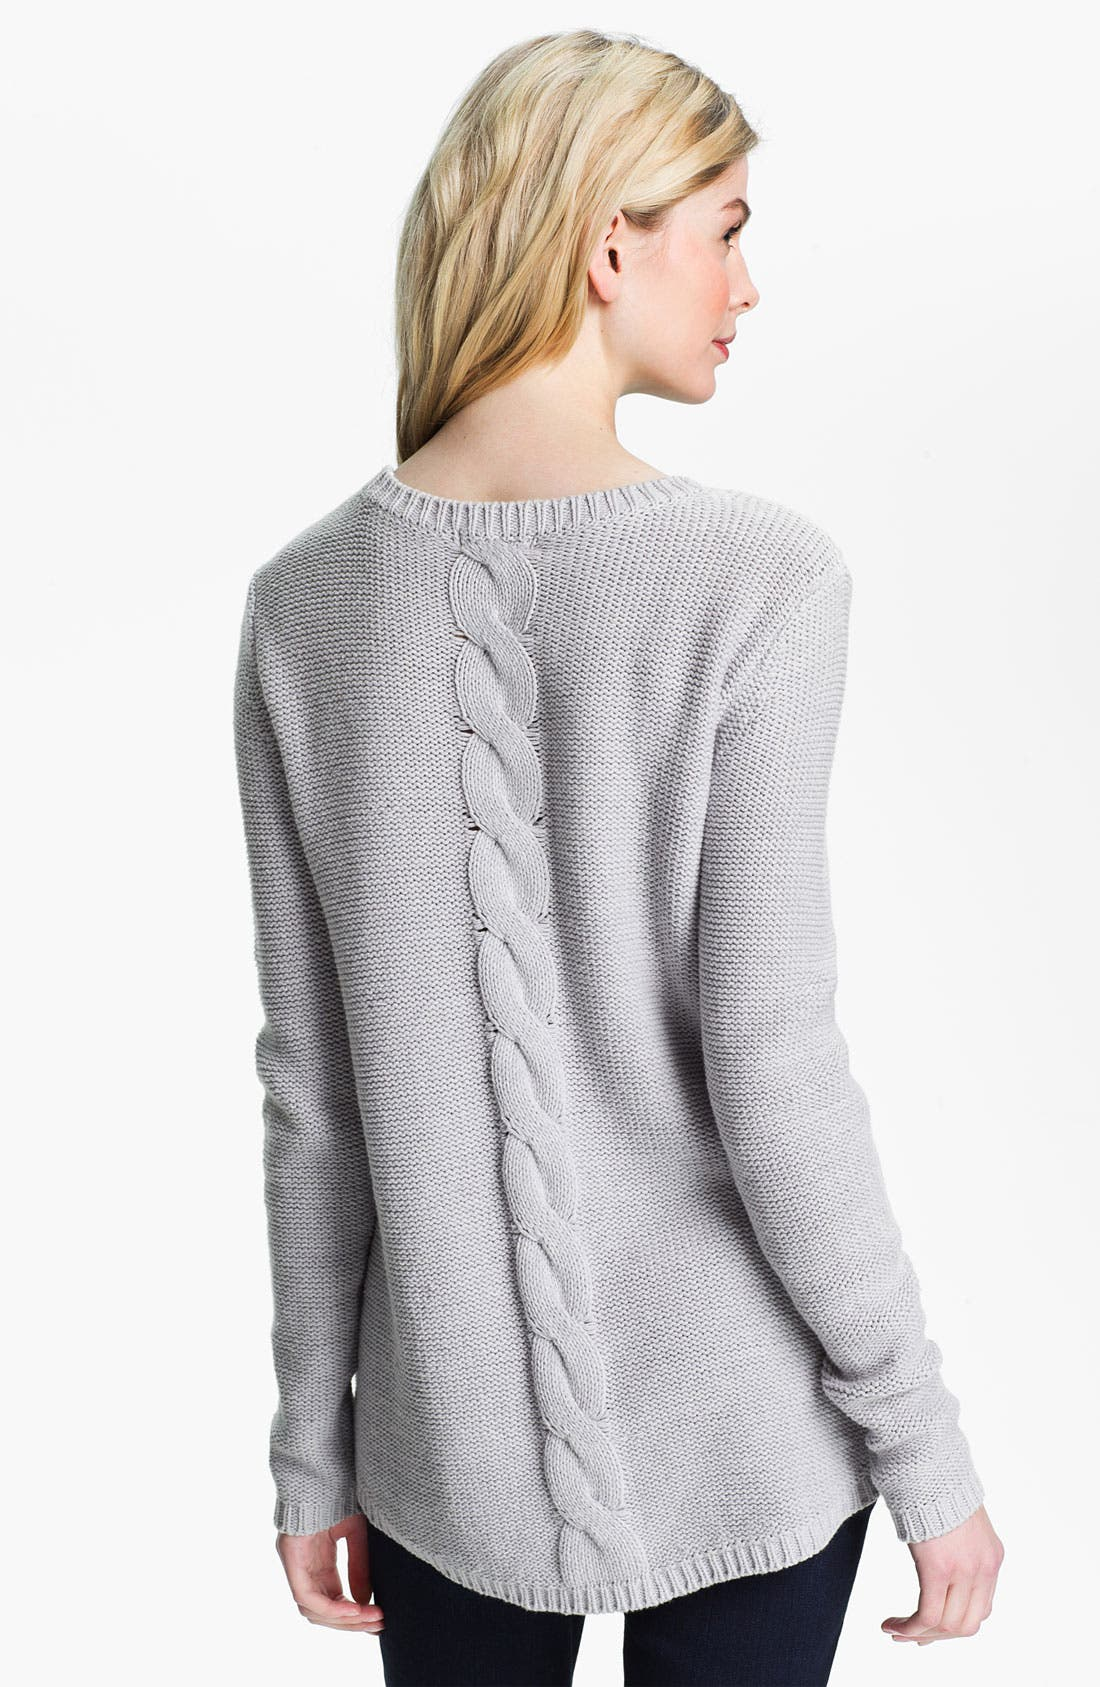 Alternate Image 1 Selected - Isaac Mizrahi Jeans 'Felicity' Sweater (Online Exclusive)